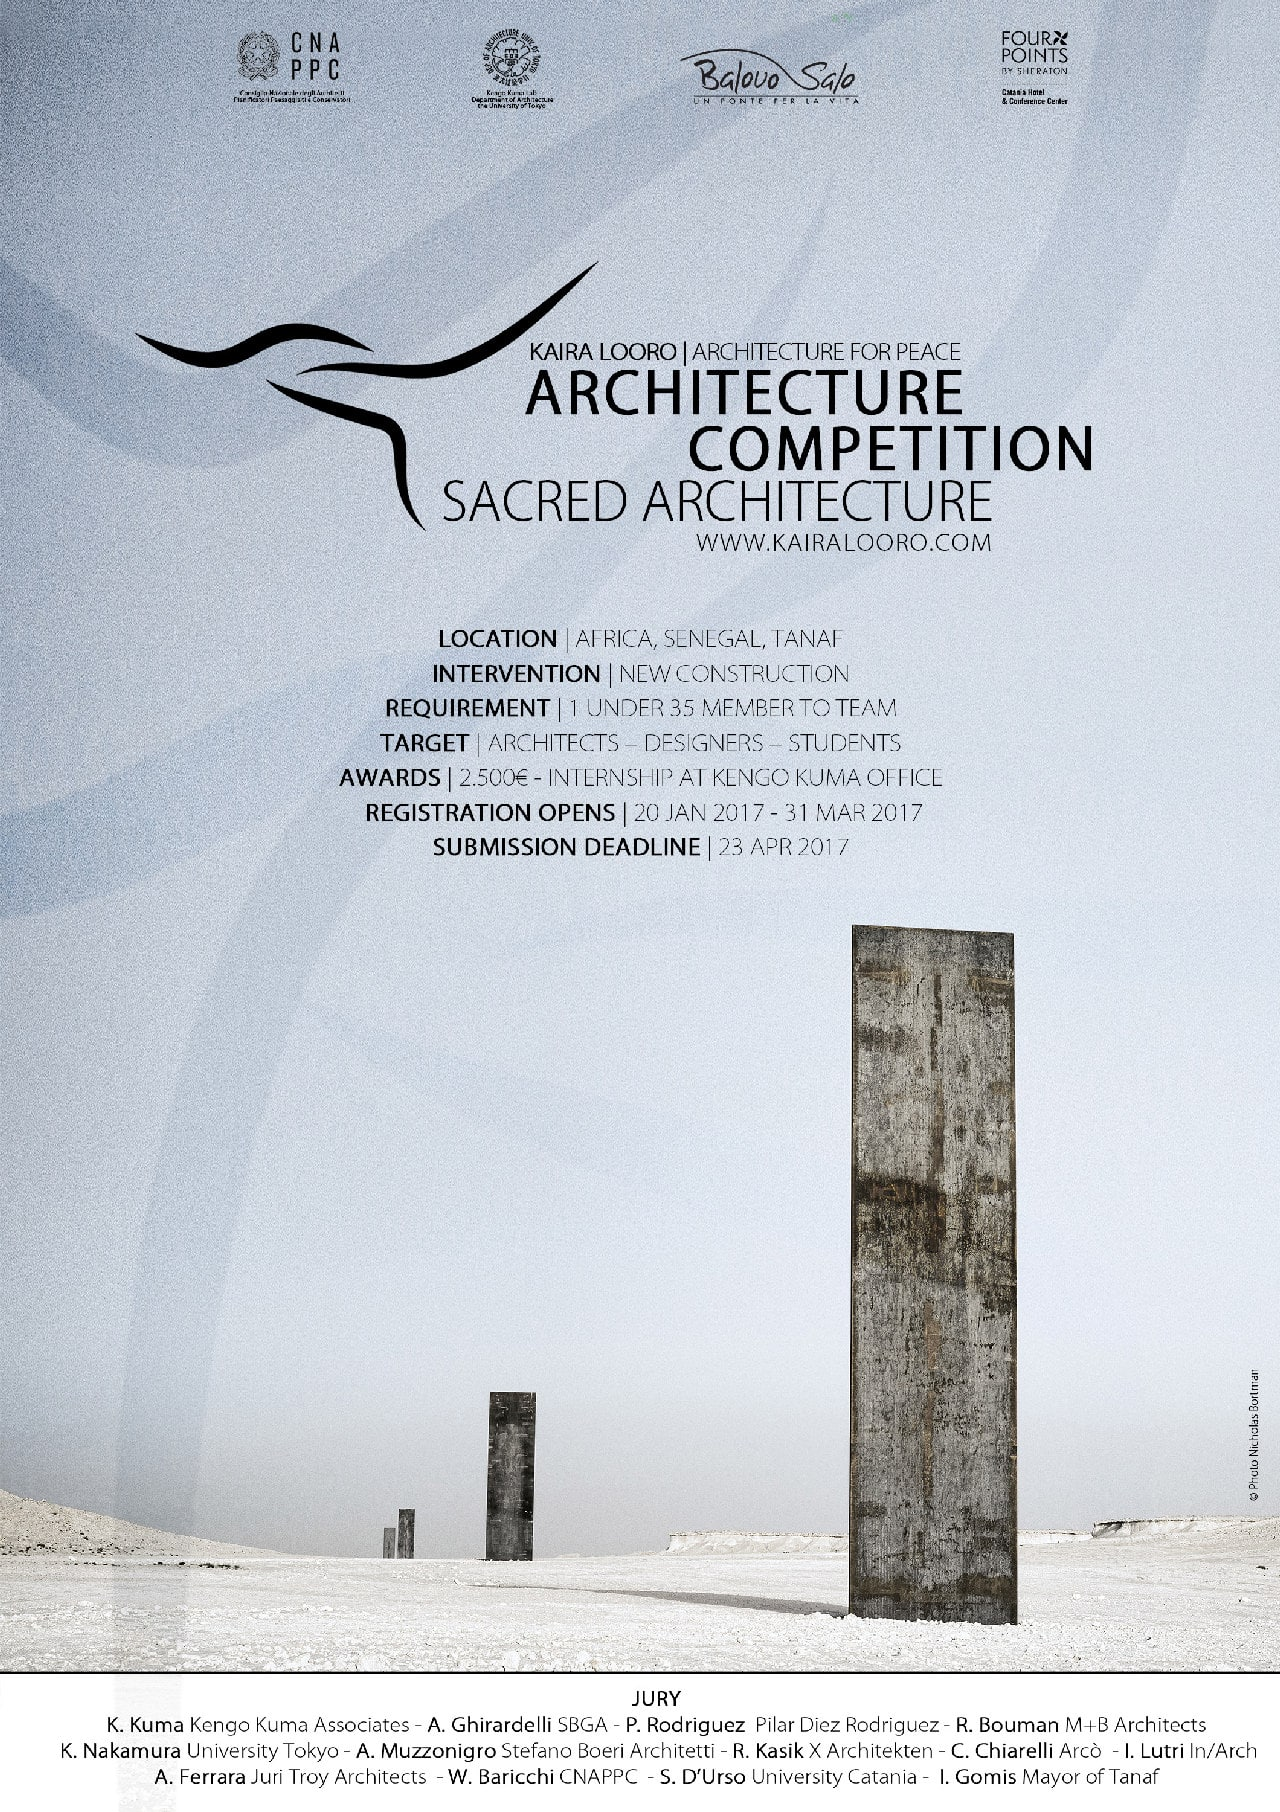 KAIRA LOORO COMPETITION Kaira Looro Competition for Sacred Architecture